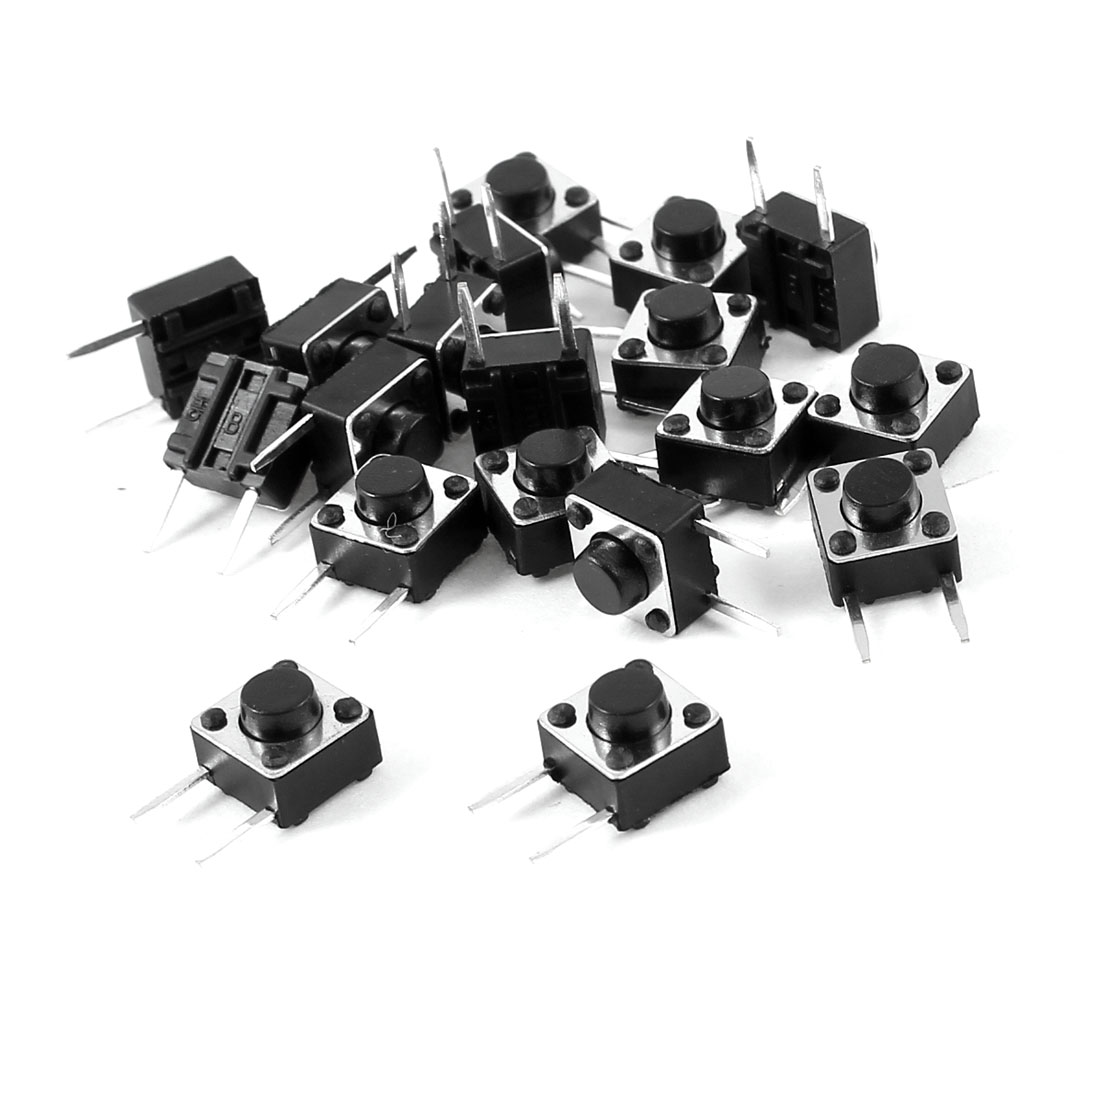 20 x DIP Through Hole Mount Momentary Push Button Tact Switch 6x6x5mm